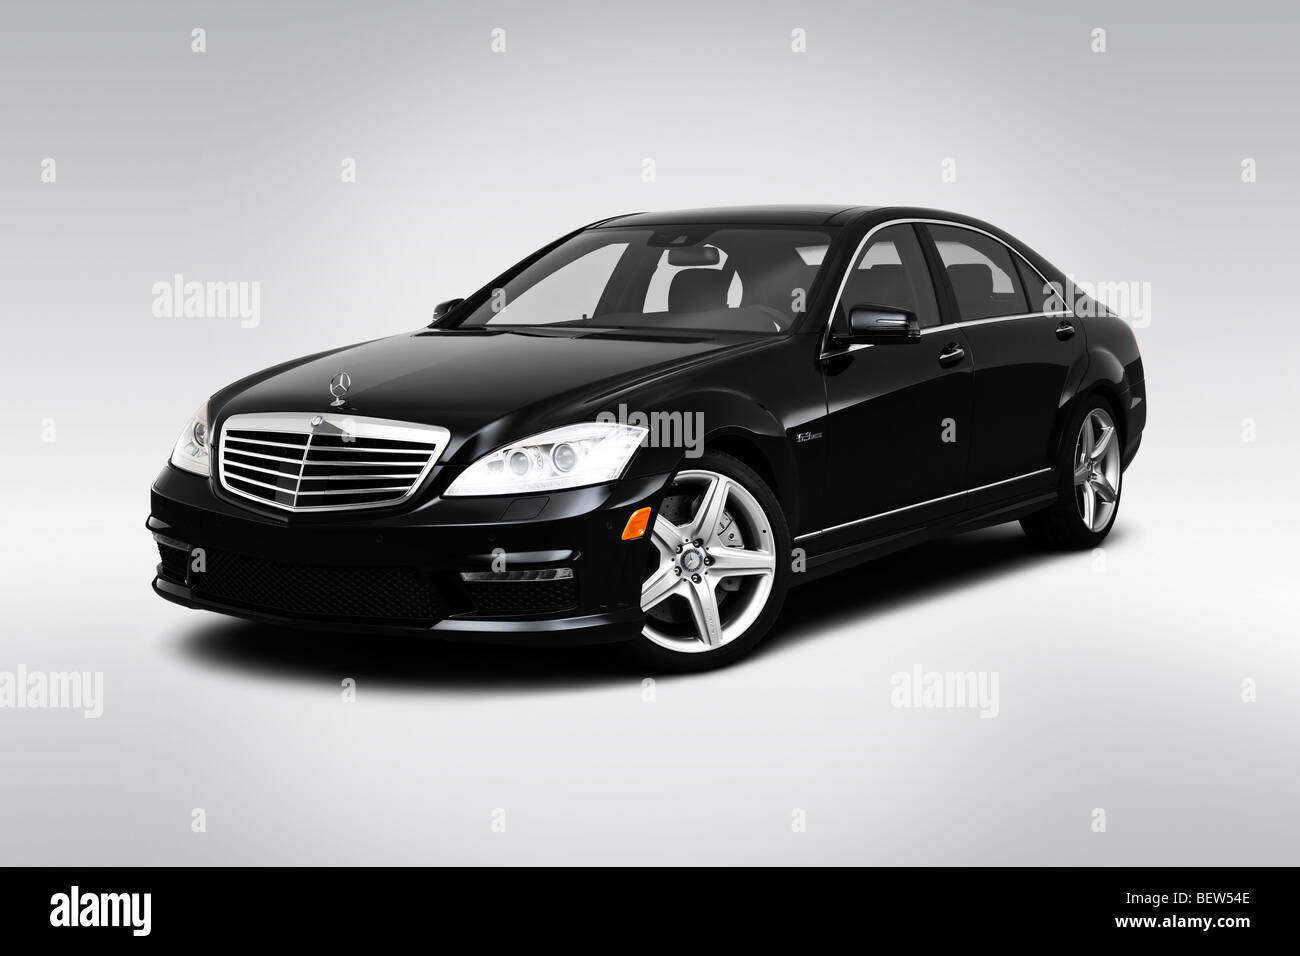 All Types 2010 s class : 2010 Mercedes-Benz S-Class S63 AMG in Black - Front angle view ...